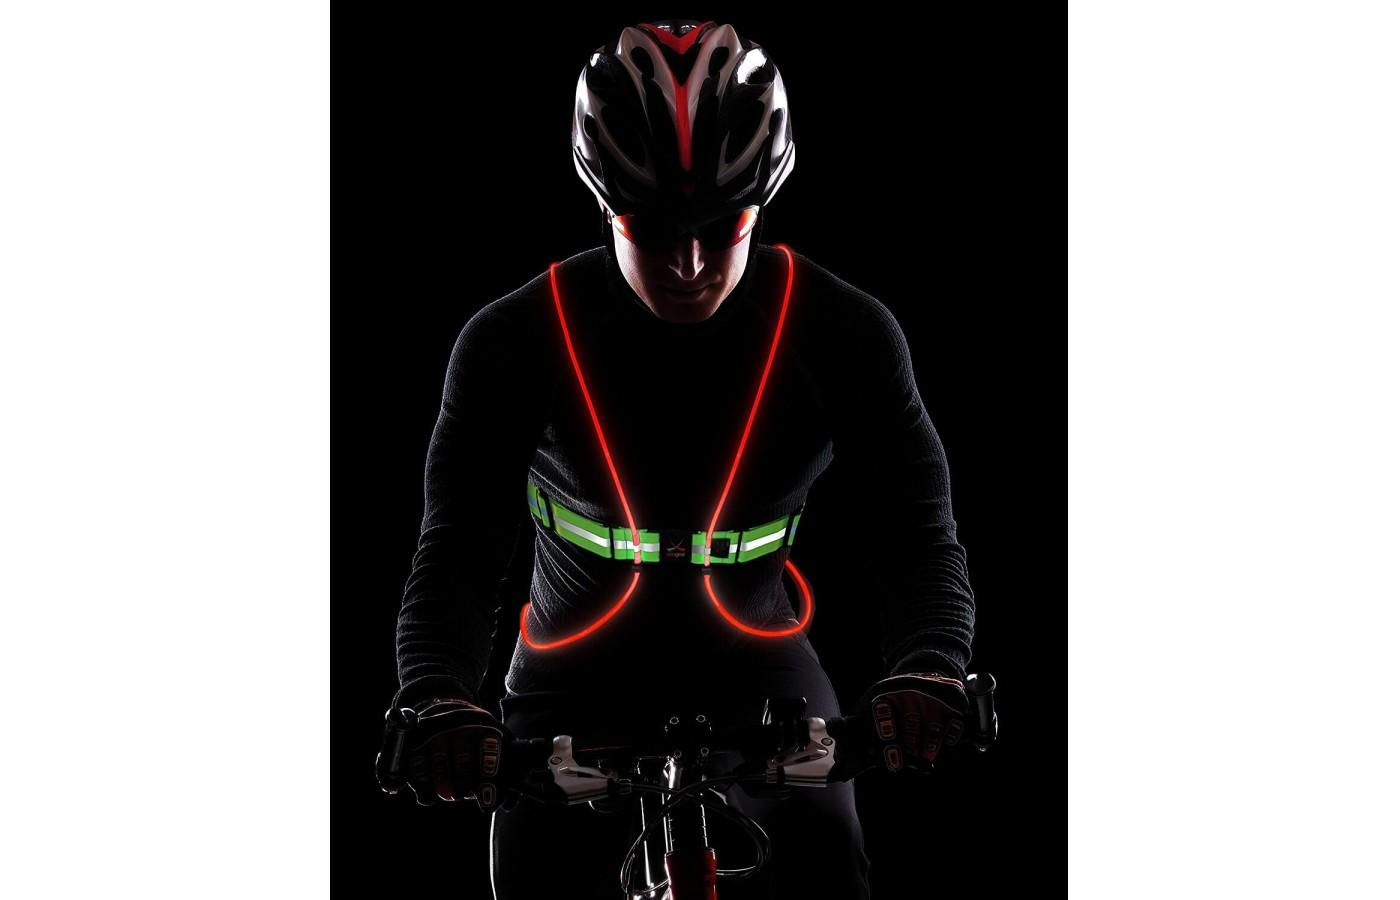 This is a product perfect for runners, hikers, bikers, and any athlete looking to stay safe in the dark.